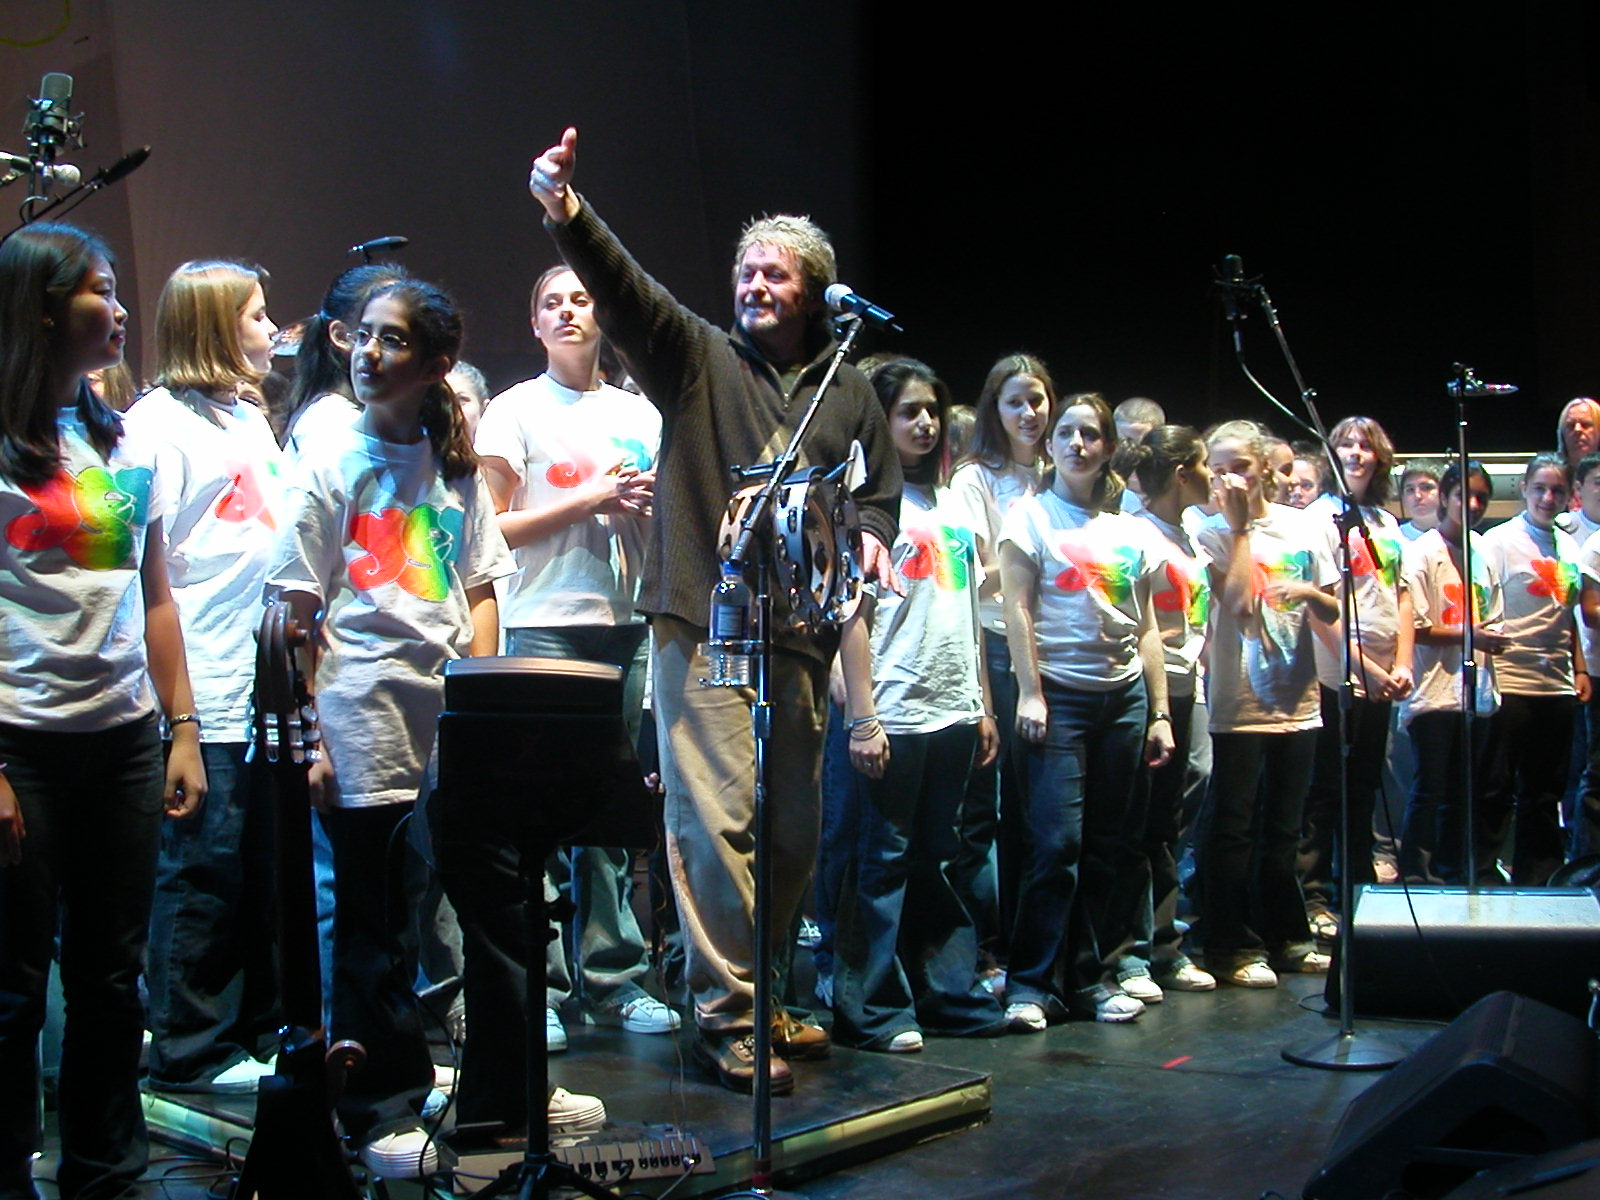 Yes2002-11-21ChicagoTheatreIL (18).jpg